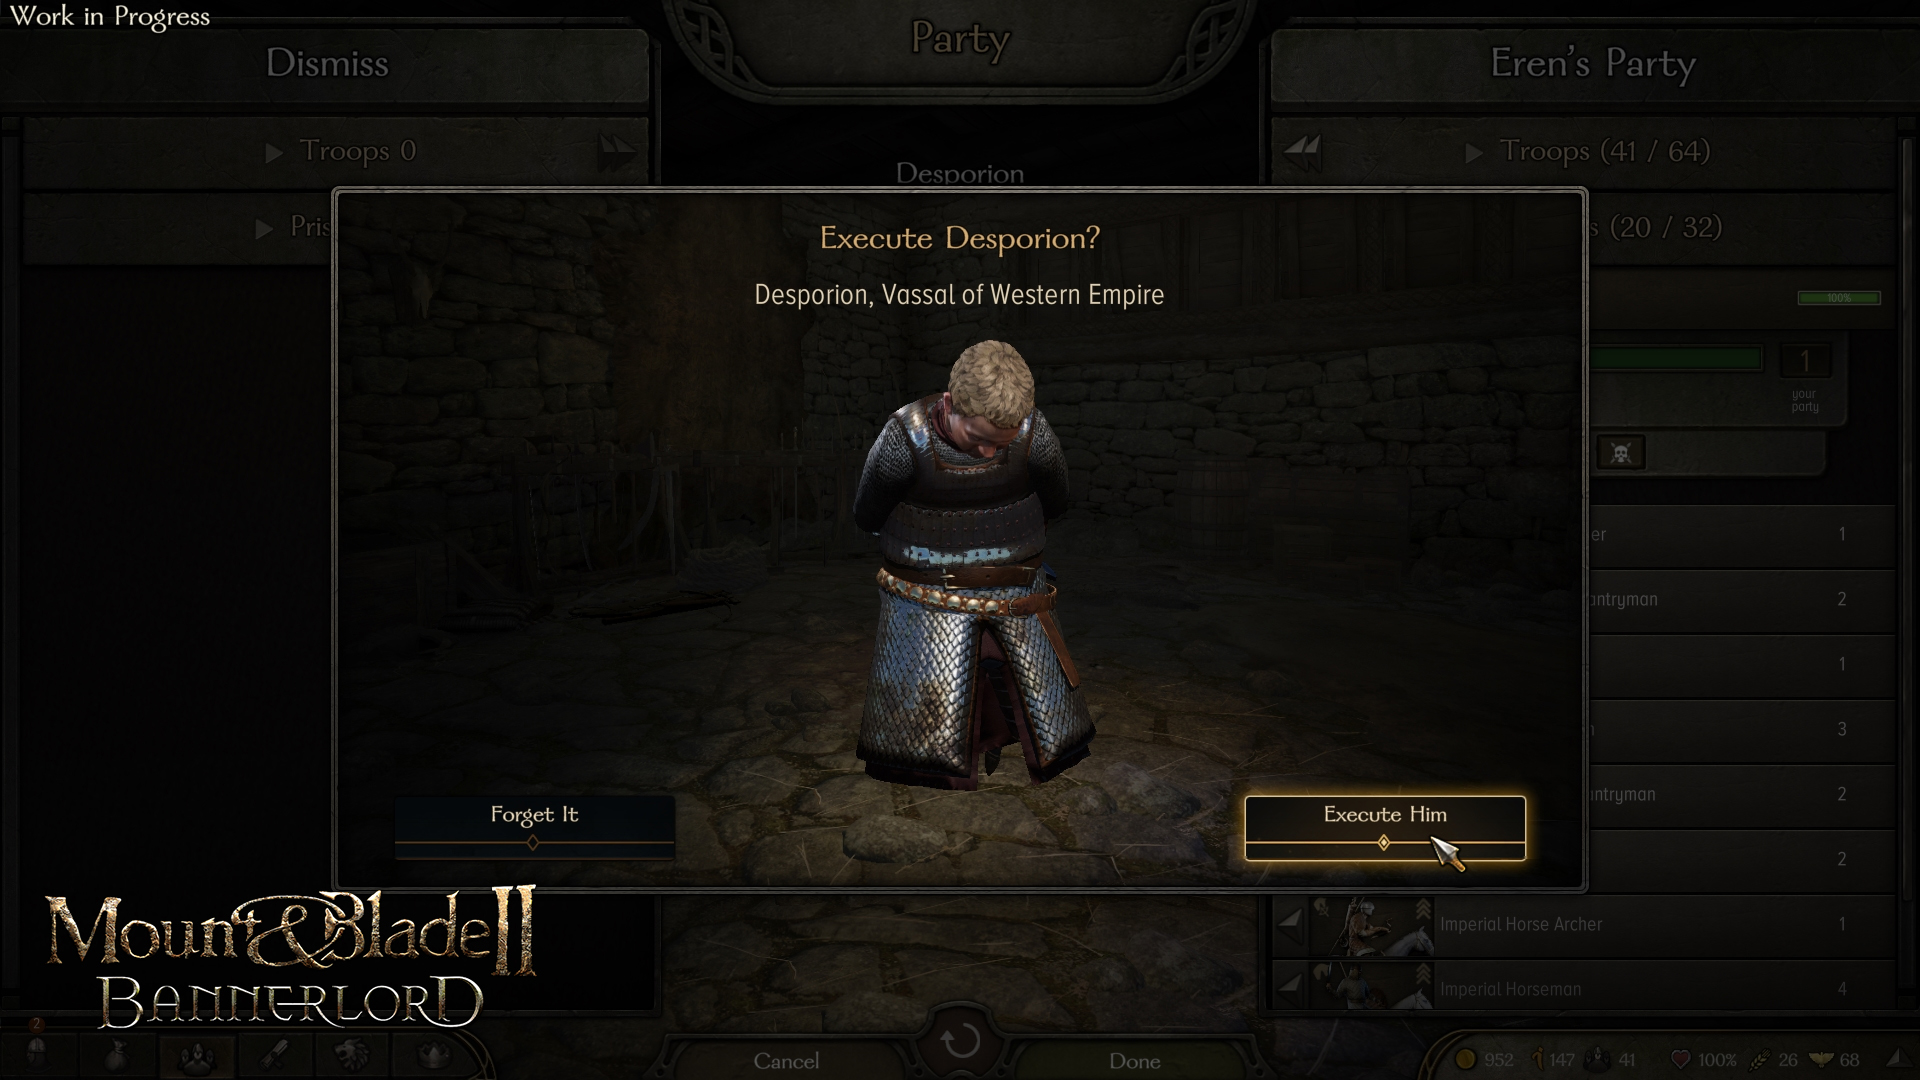 Mount And Blade 2 Bannerlord Developer Diary Executions And